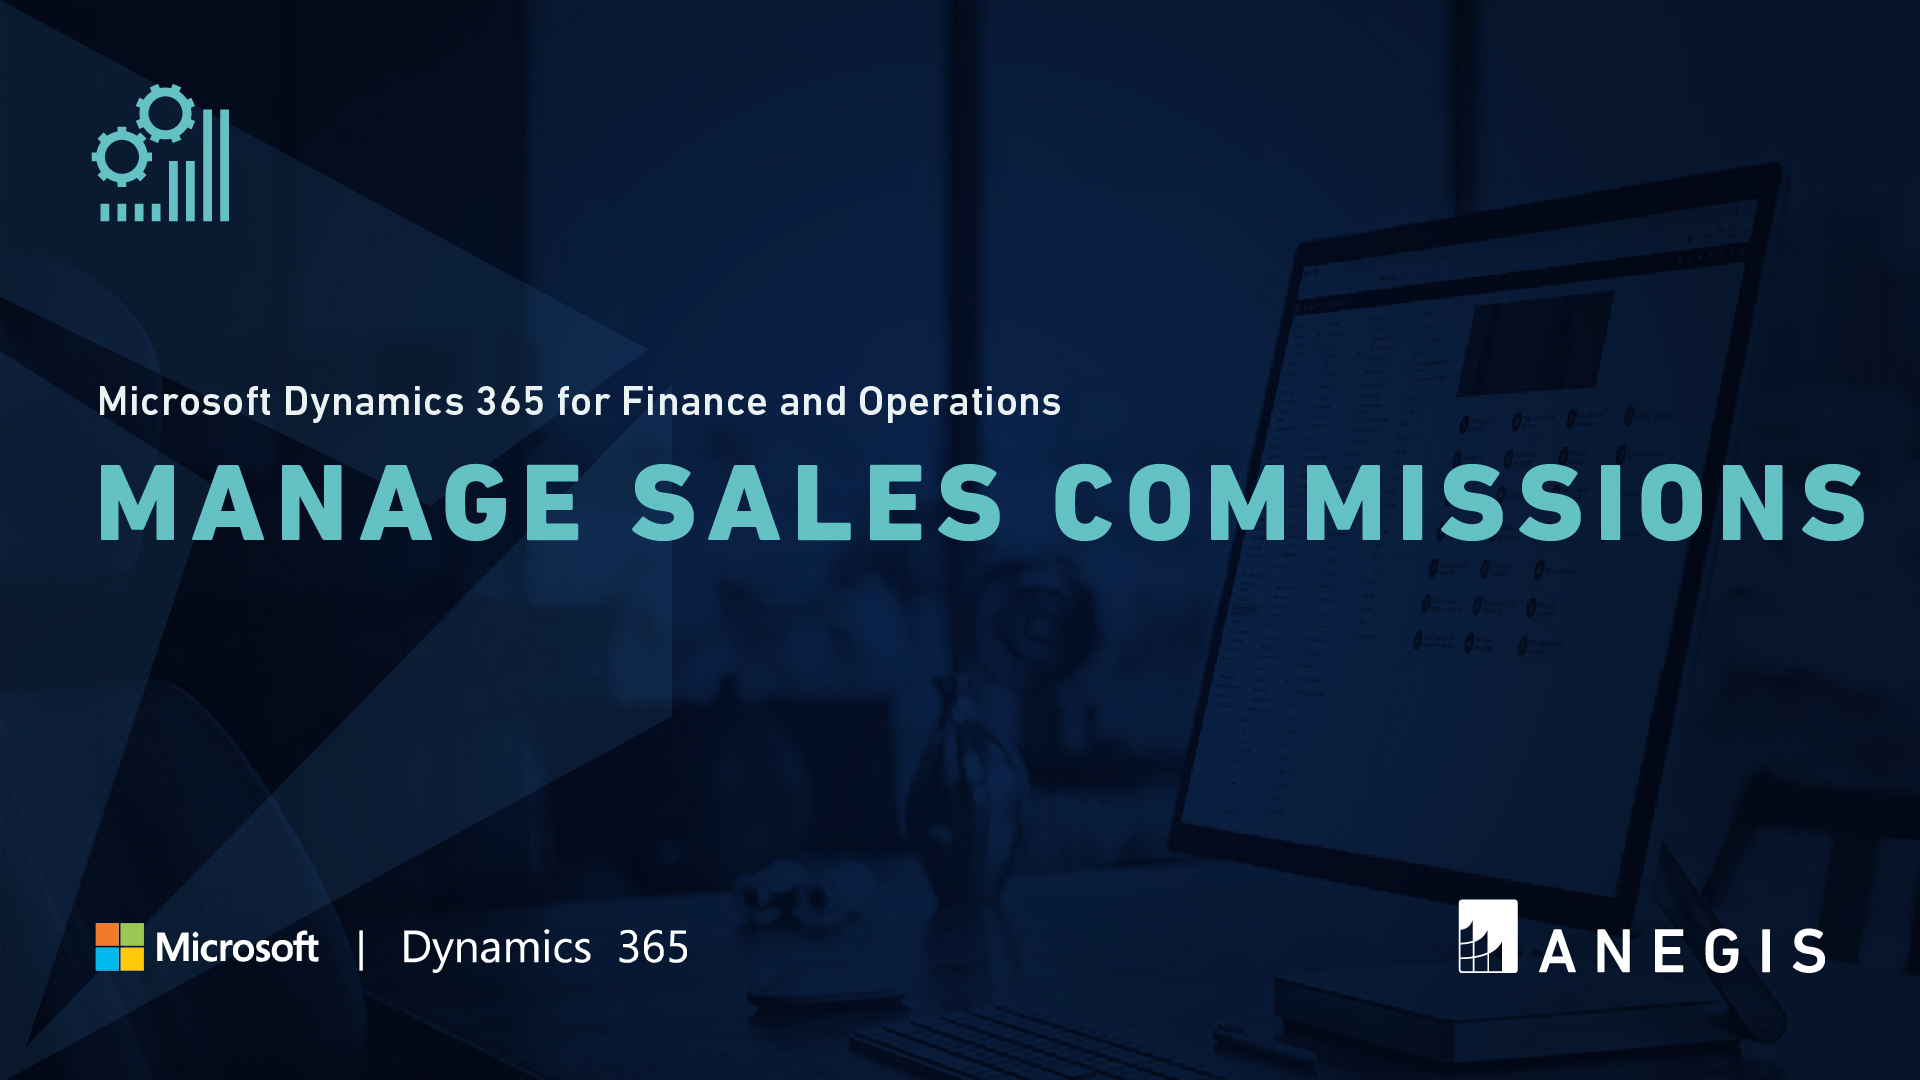 D365 F&O: Manage Sales Commissions